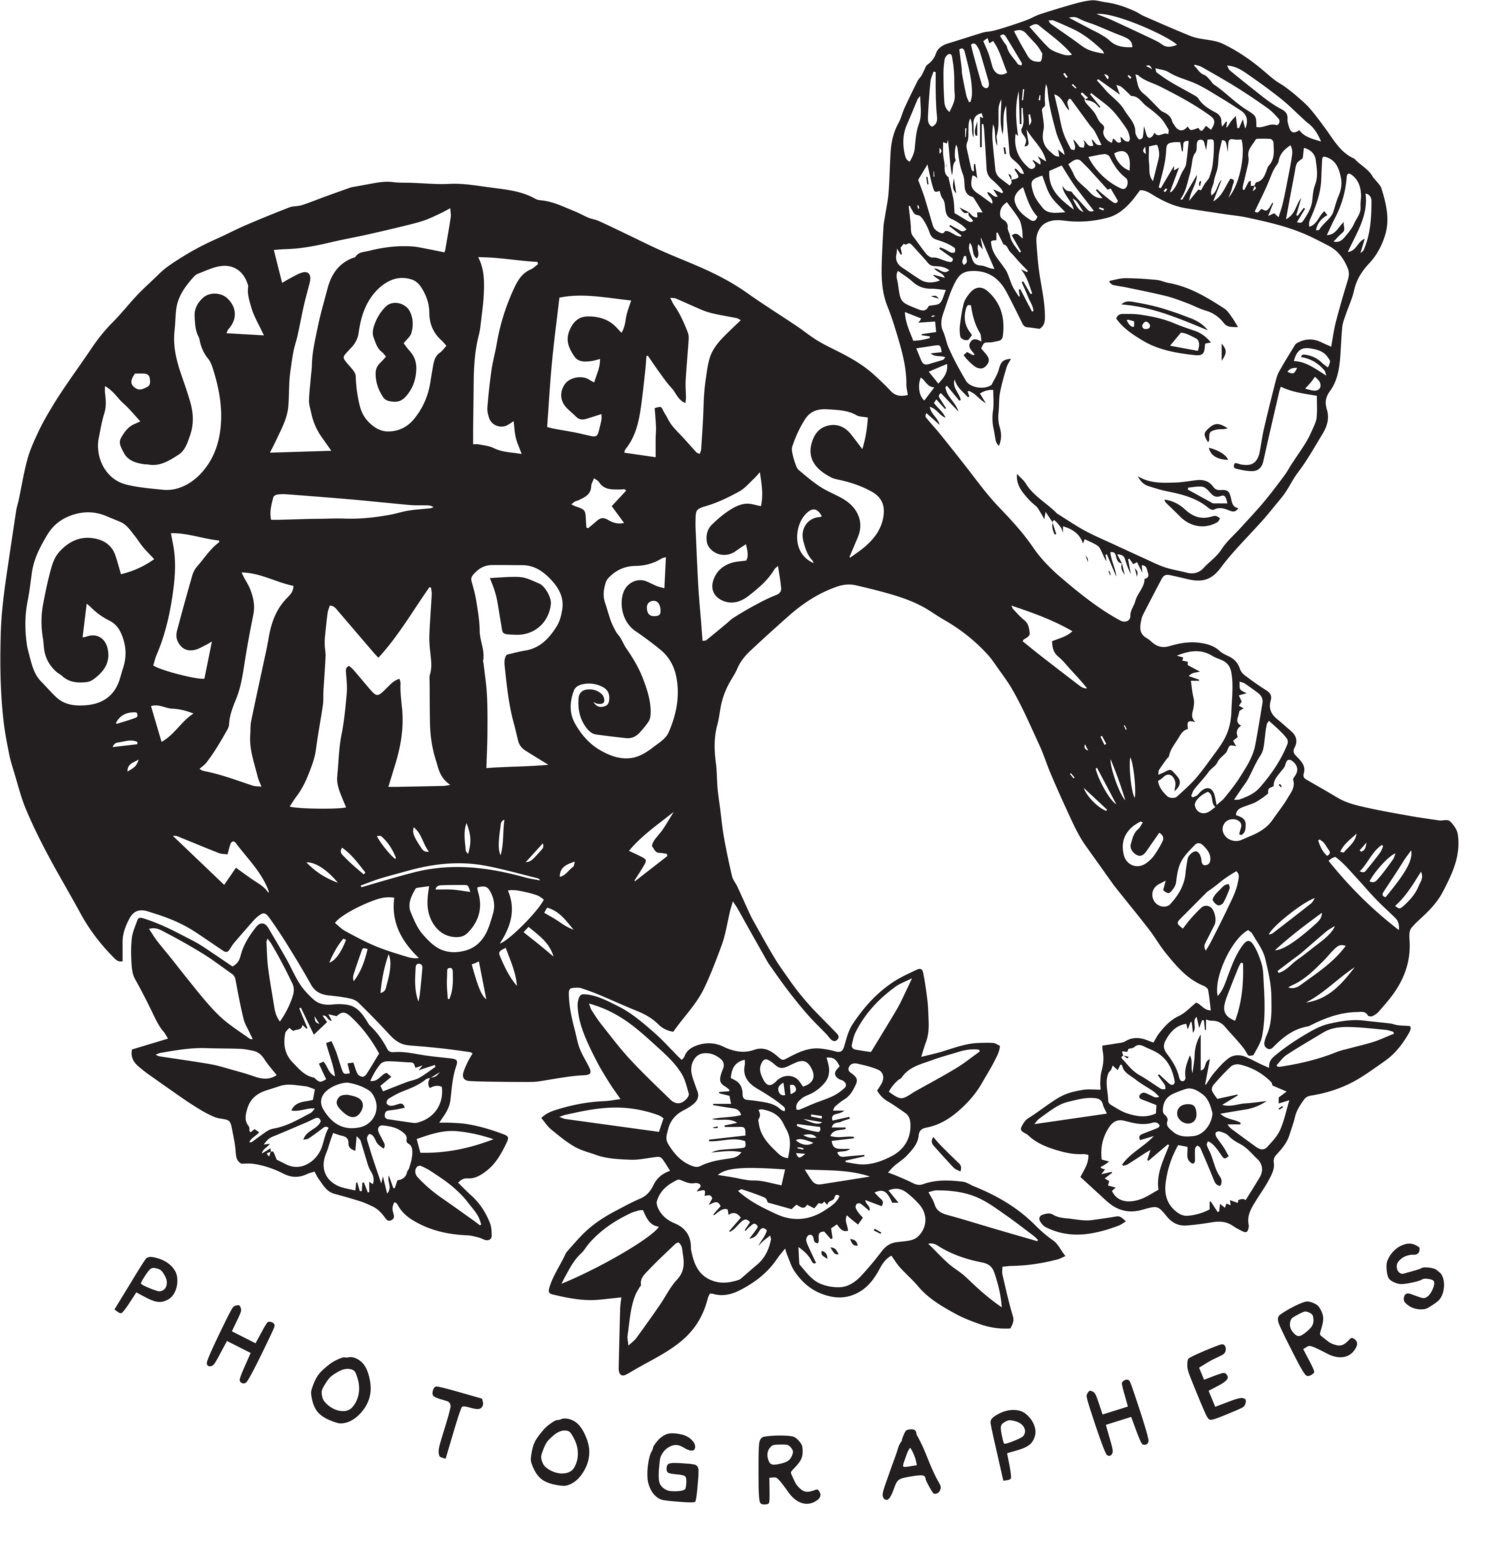 Seattle Wedding Photographers: Stolen Glimpses